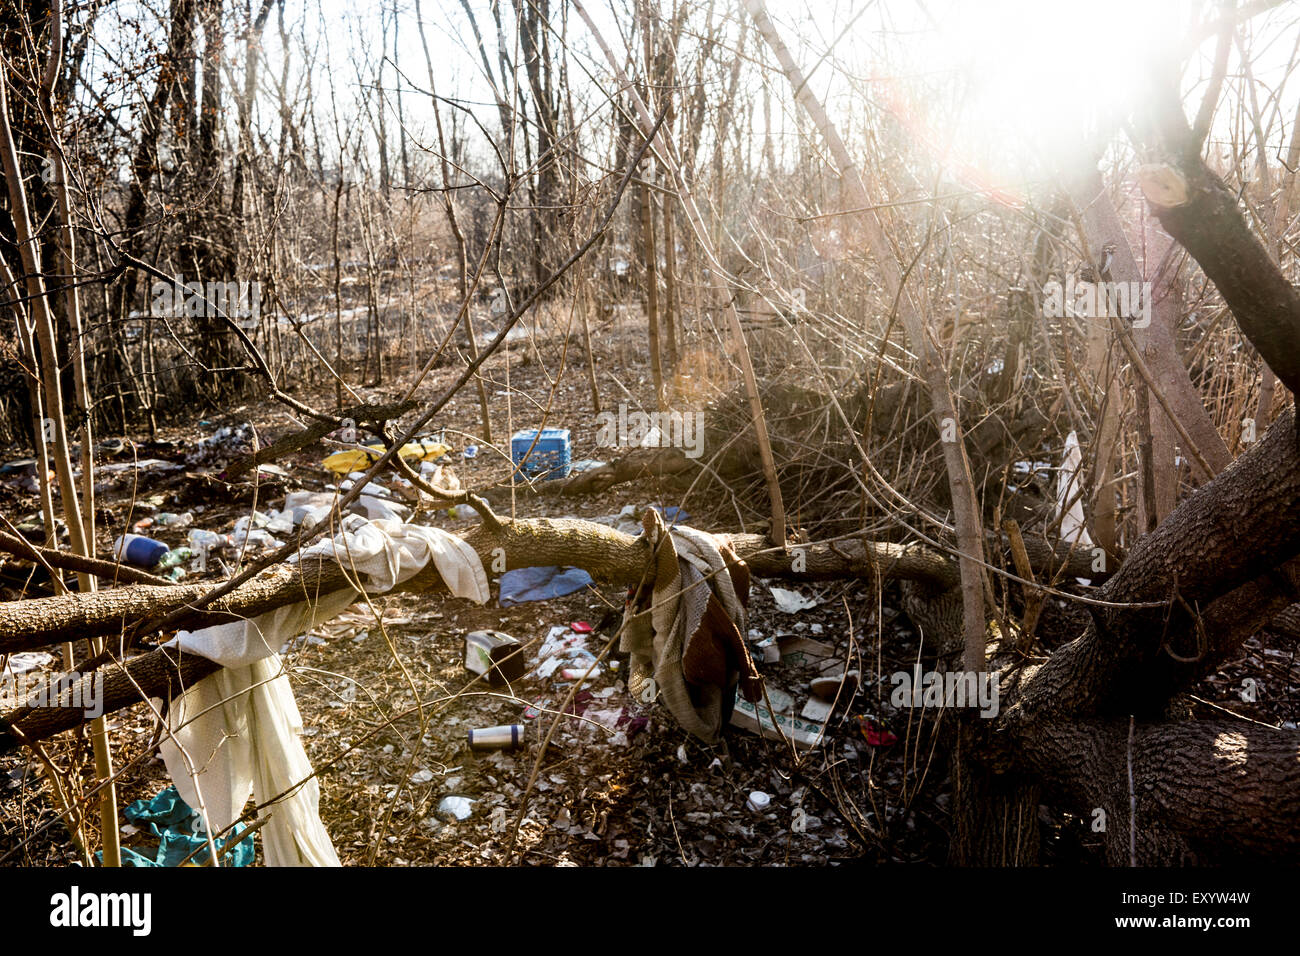 An abandoned squatter's home in the woods. - Stock Image